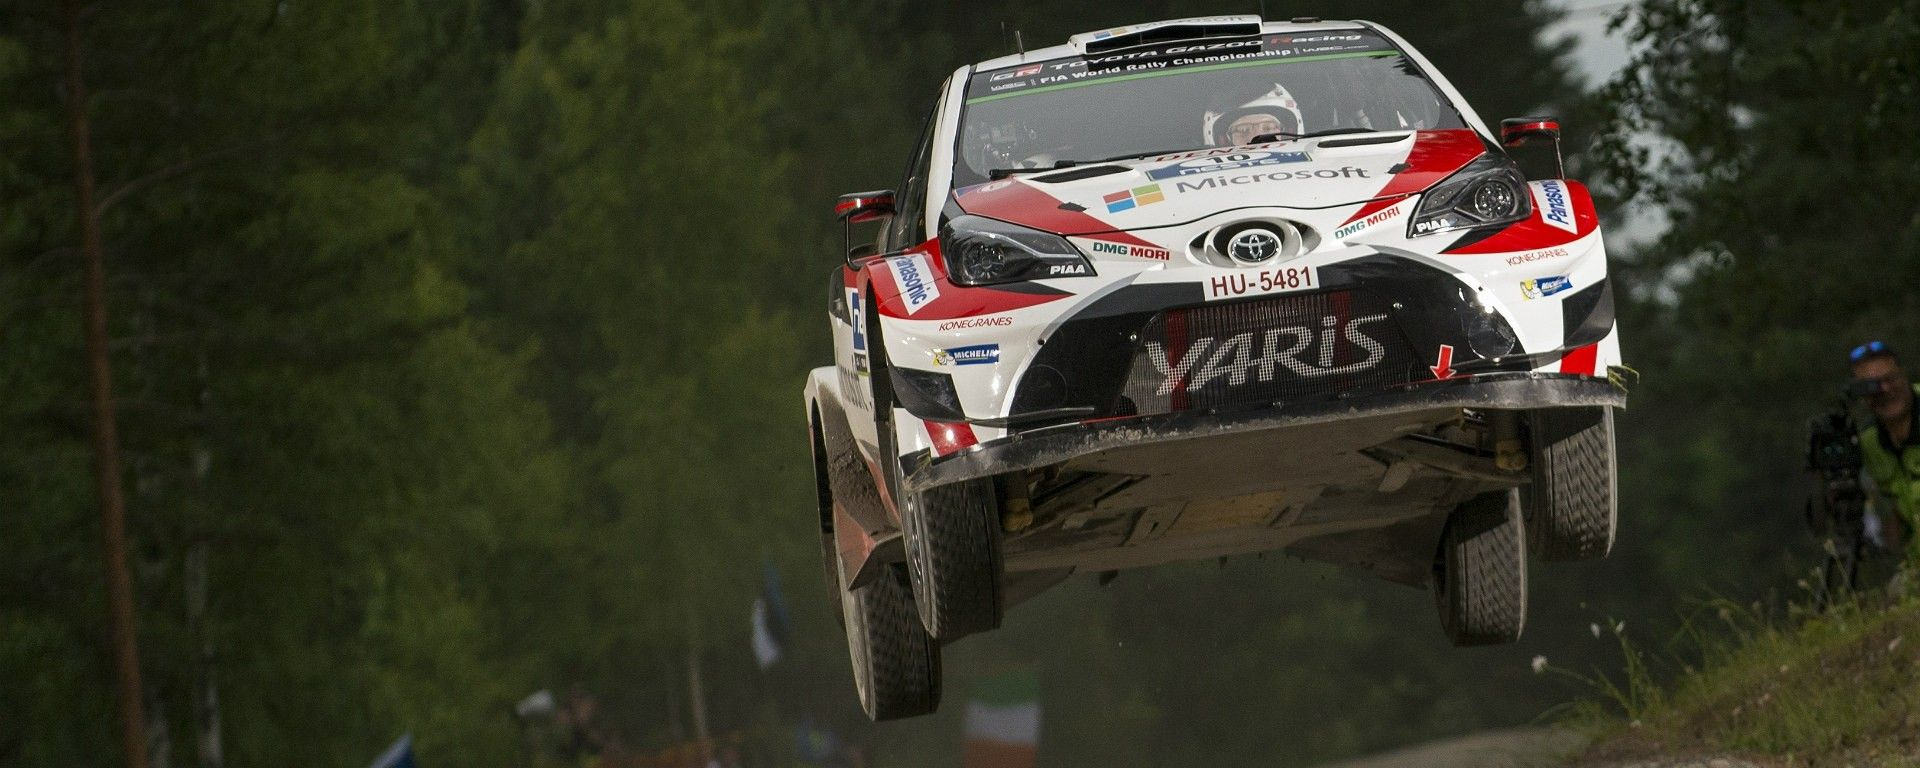 Vola la Toyota Yaris Plus WRC 2017 in cima alla classifica provvisoria del Rally di Finlandia 2017